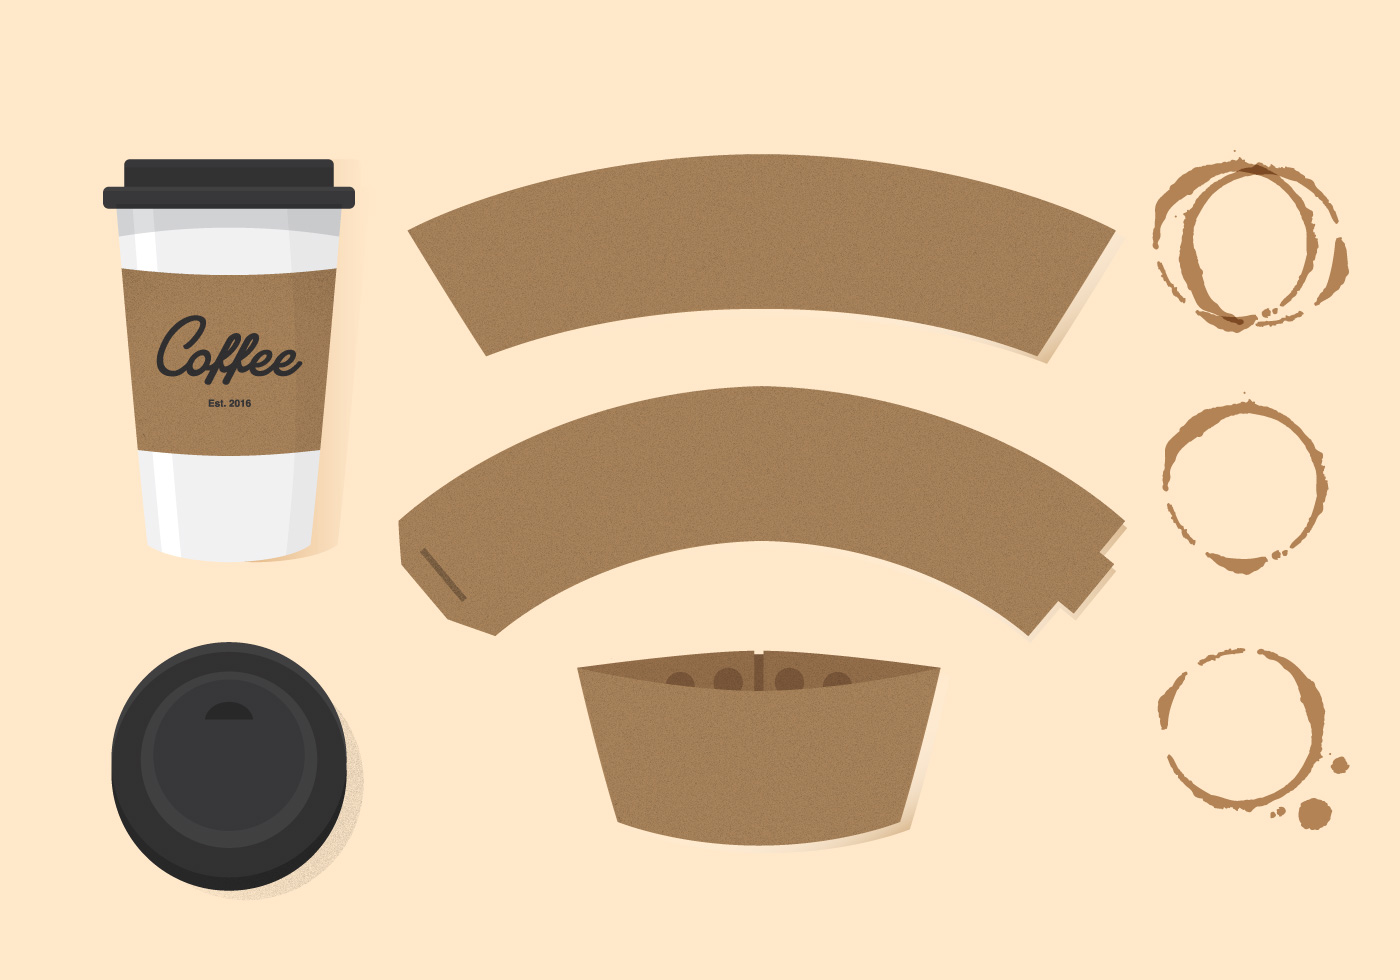 vector coffee sleeve download free vector art stock graphics images. Black Bedroom Furniture Sets. Home Design Ideas